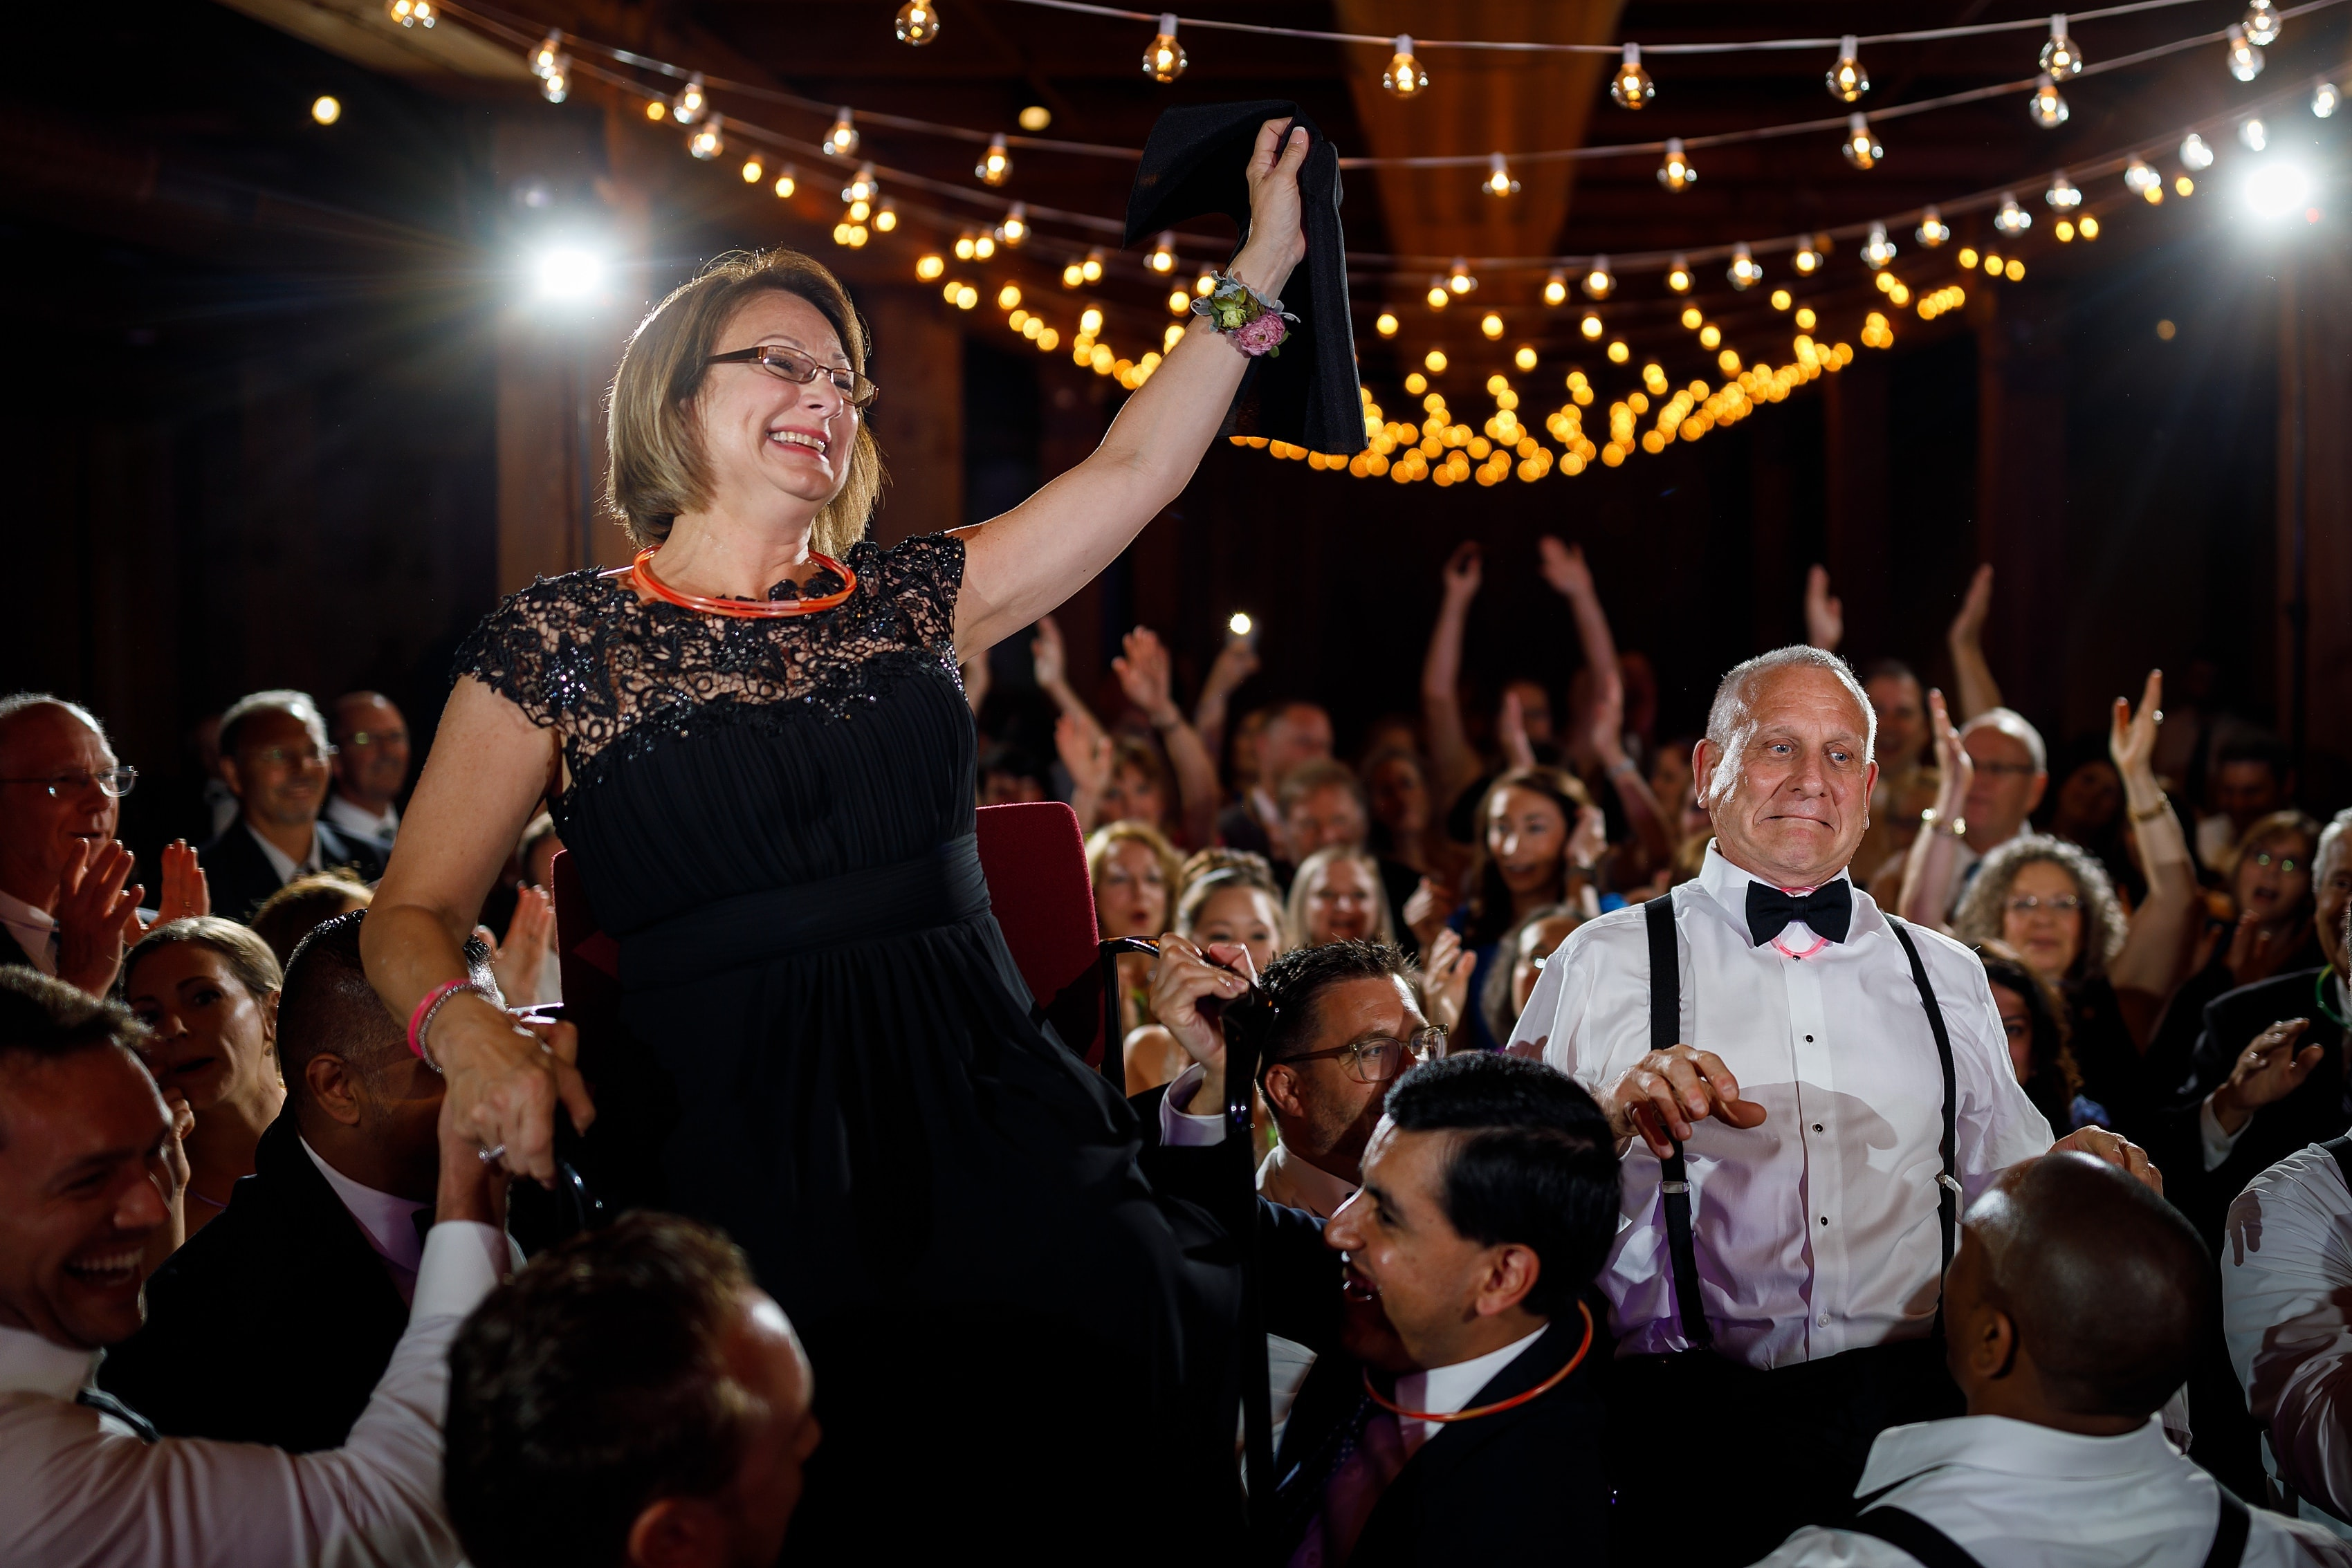 parents of the groom are lifted onto chairs for the hora during wedding reception at Bridgeport Art Center Sculpture Garden in Chicago